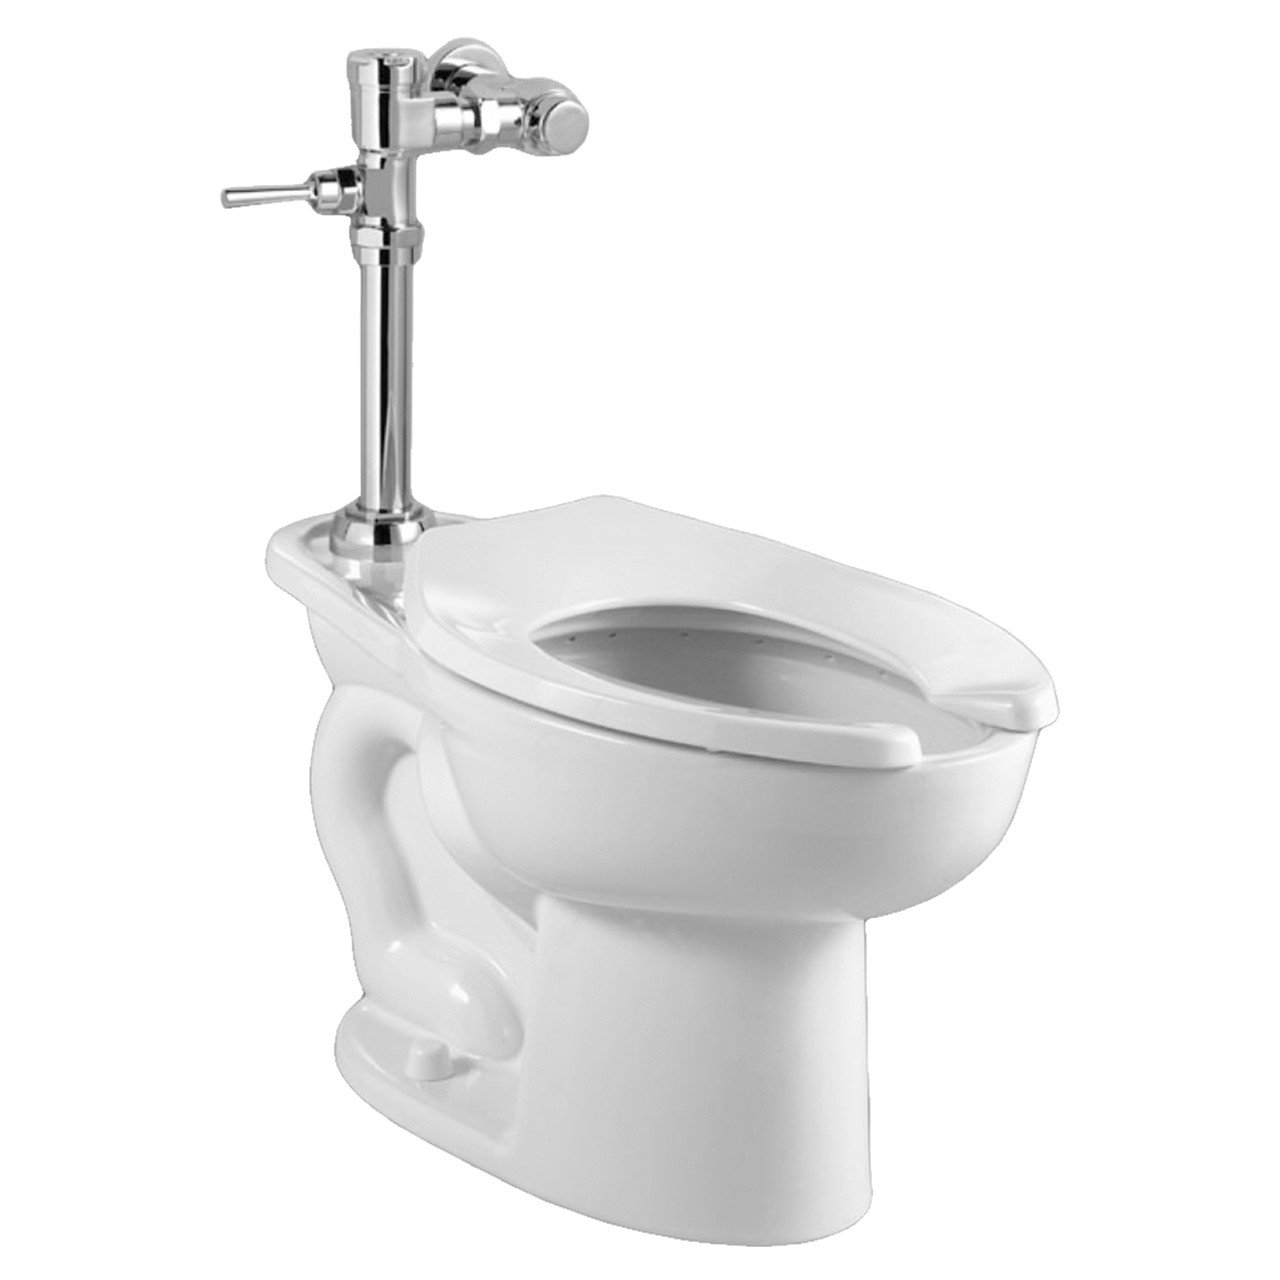 American Standard 2854.016.020 Madera ADA 1.6 GPF EverClean Toilet with Manual Flush Valve, White